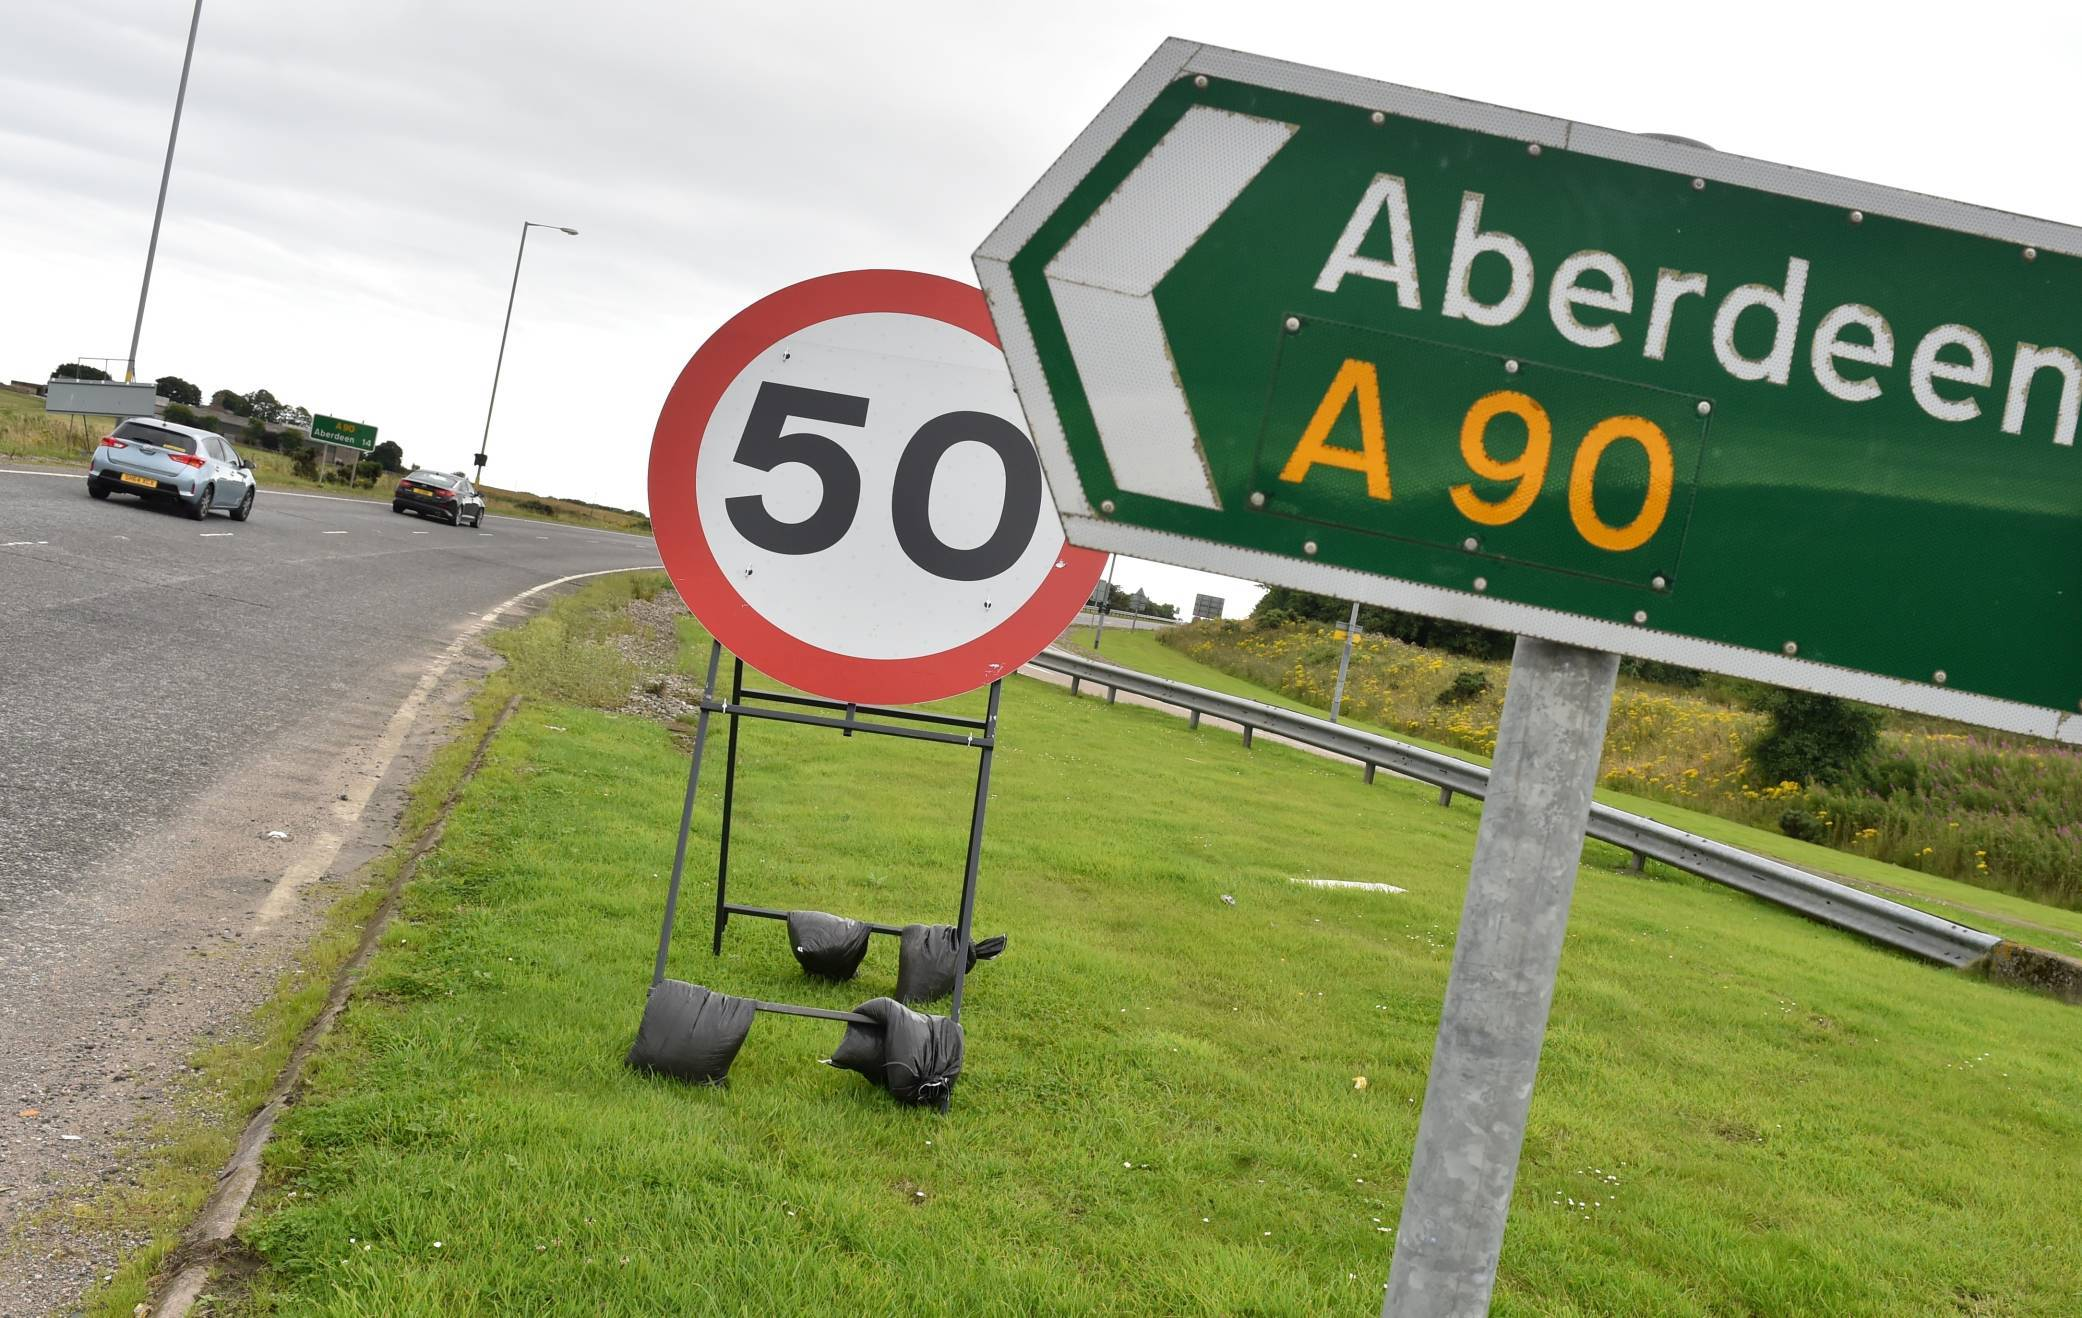 A 50mph has been implemented on the A90.